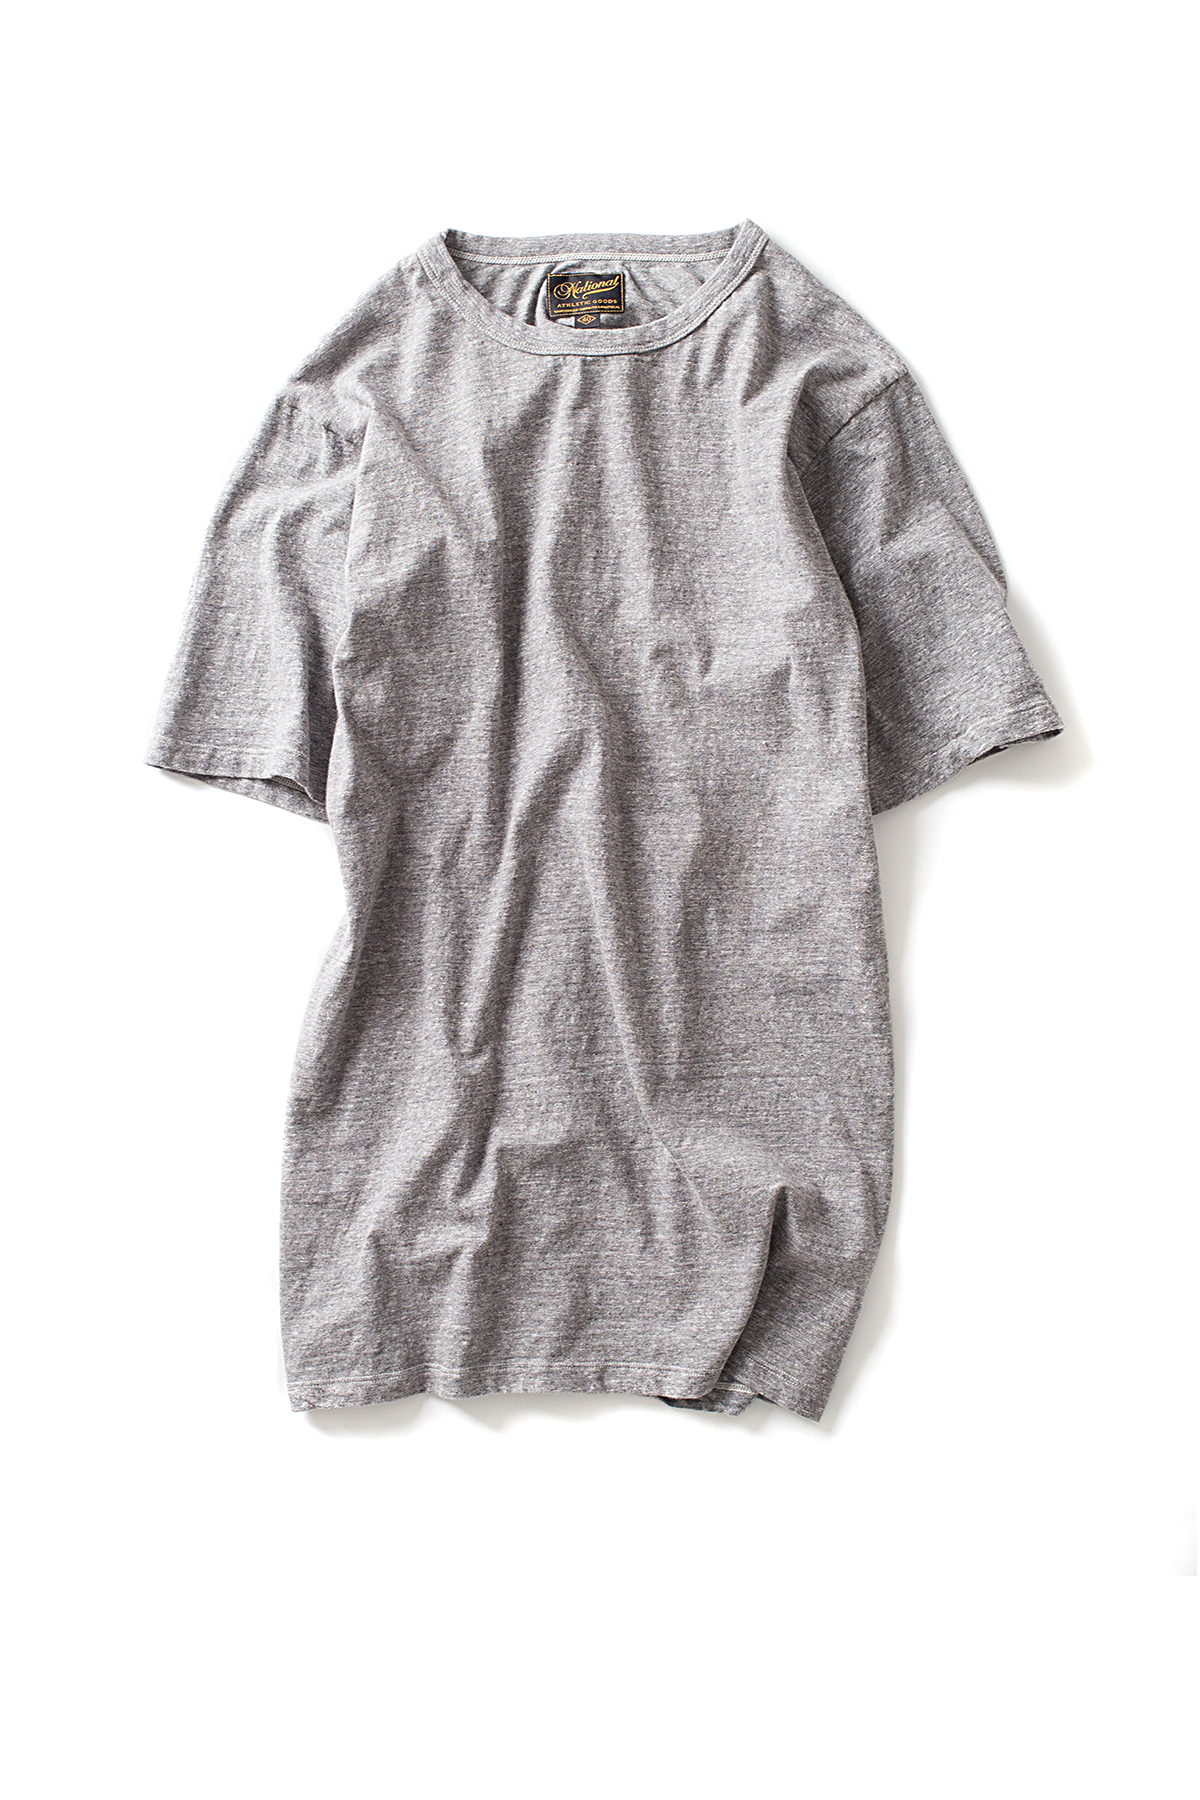 NAG : Athletic Tee (Sport Grey)